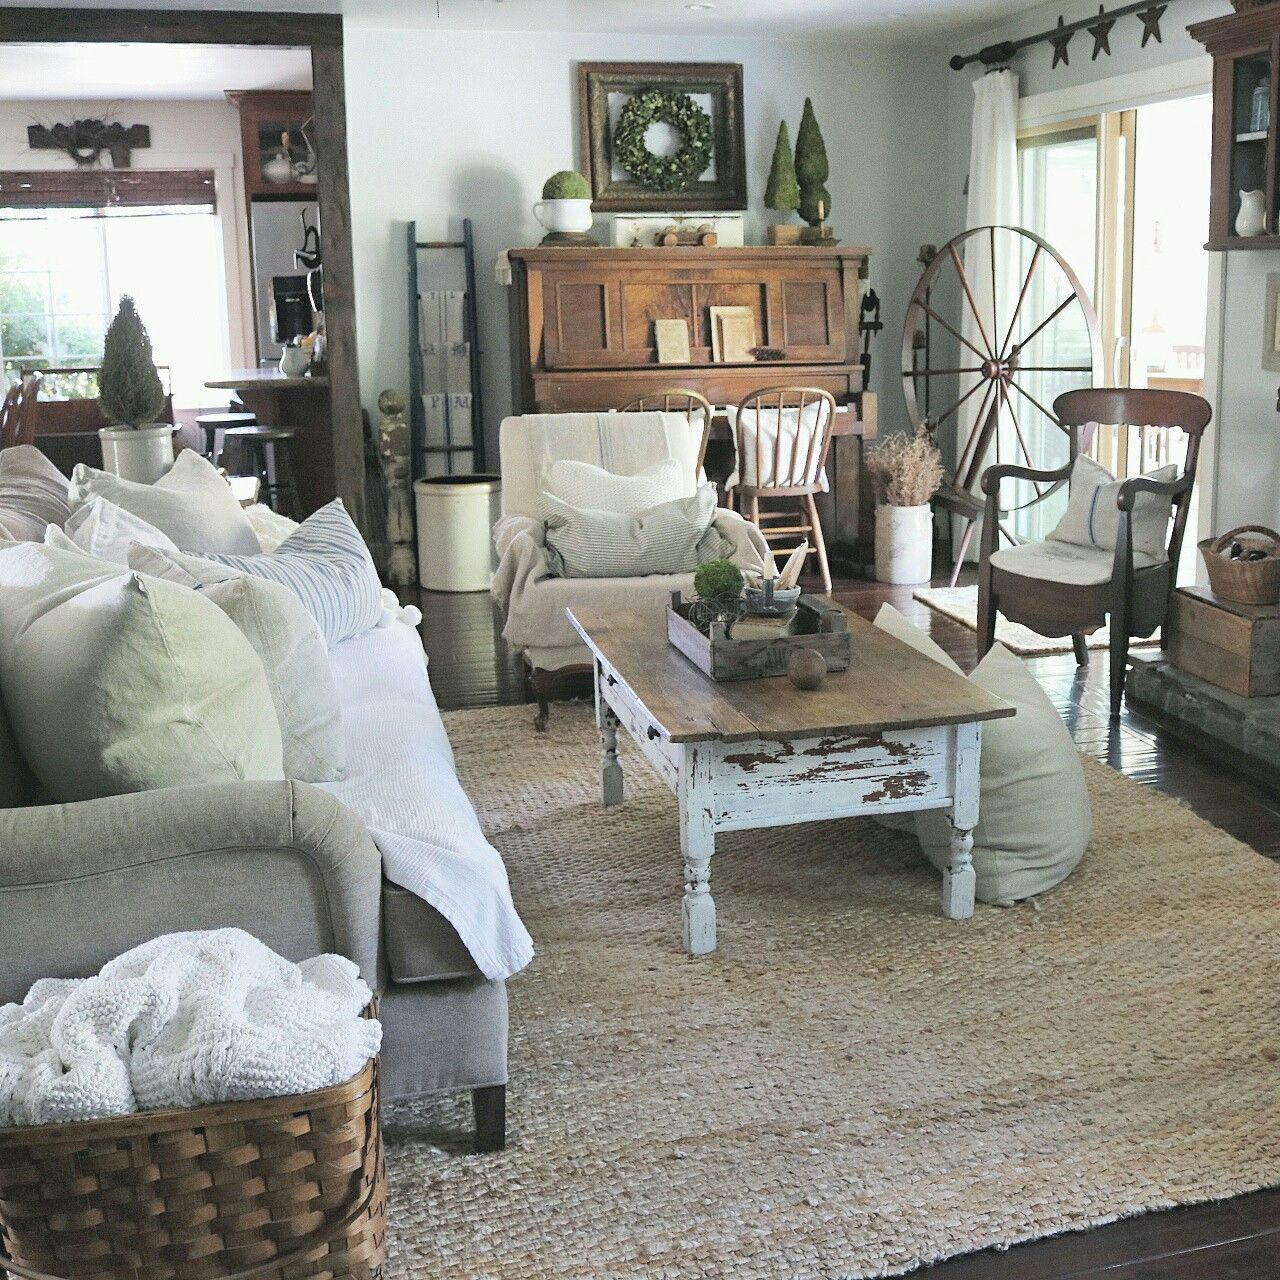 Cheap And Chic Living Room Decor Ideas: Farmhouse - Living Room At Home On SweetCreek